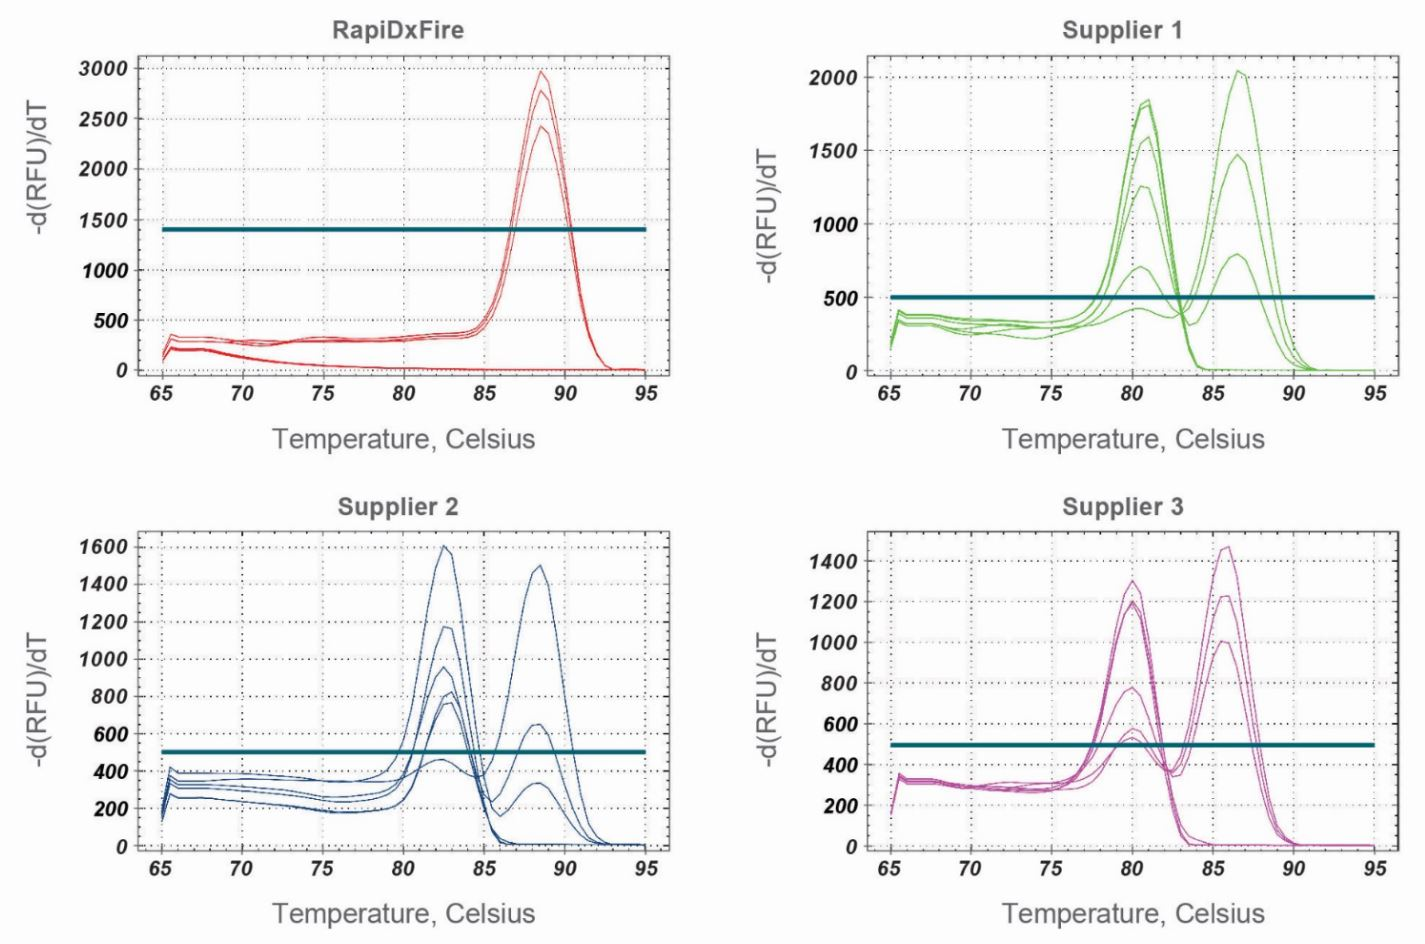 Rapidxfire Taq Polymerase Vs Other Suppliers